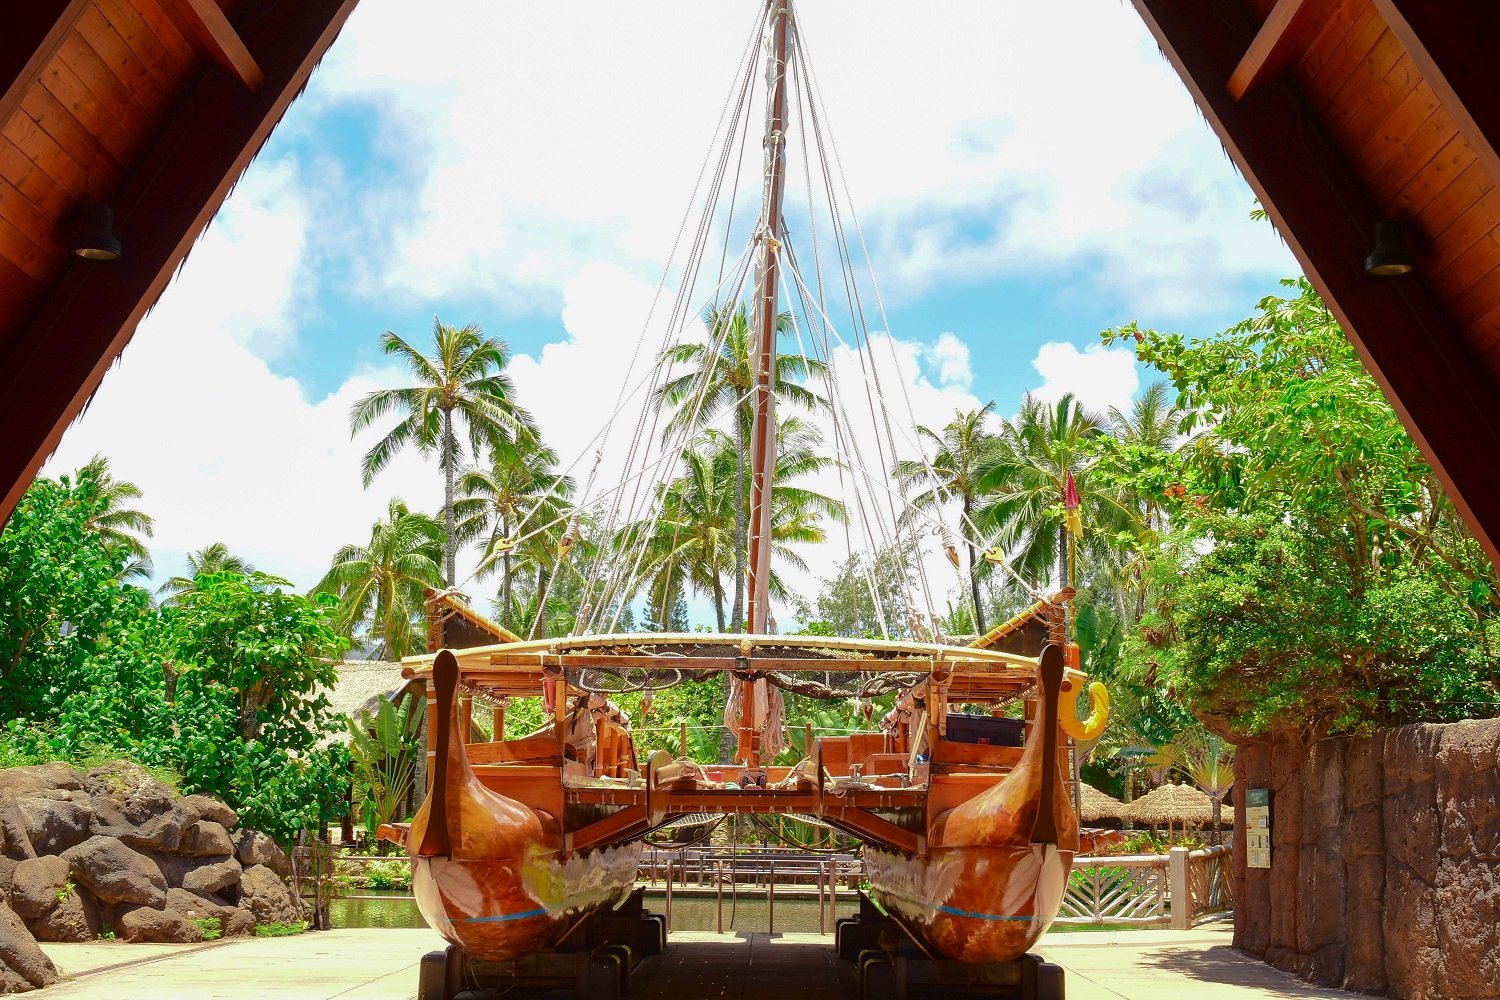 photo of the Iosepa, a doubled hulled sailing vessel used for teaching ancient Polynesian navigational skills. When it is dry-docked, it is housed on the Polynesian Cultural Center's campus